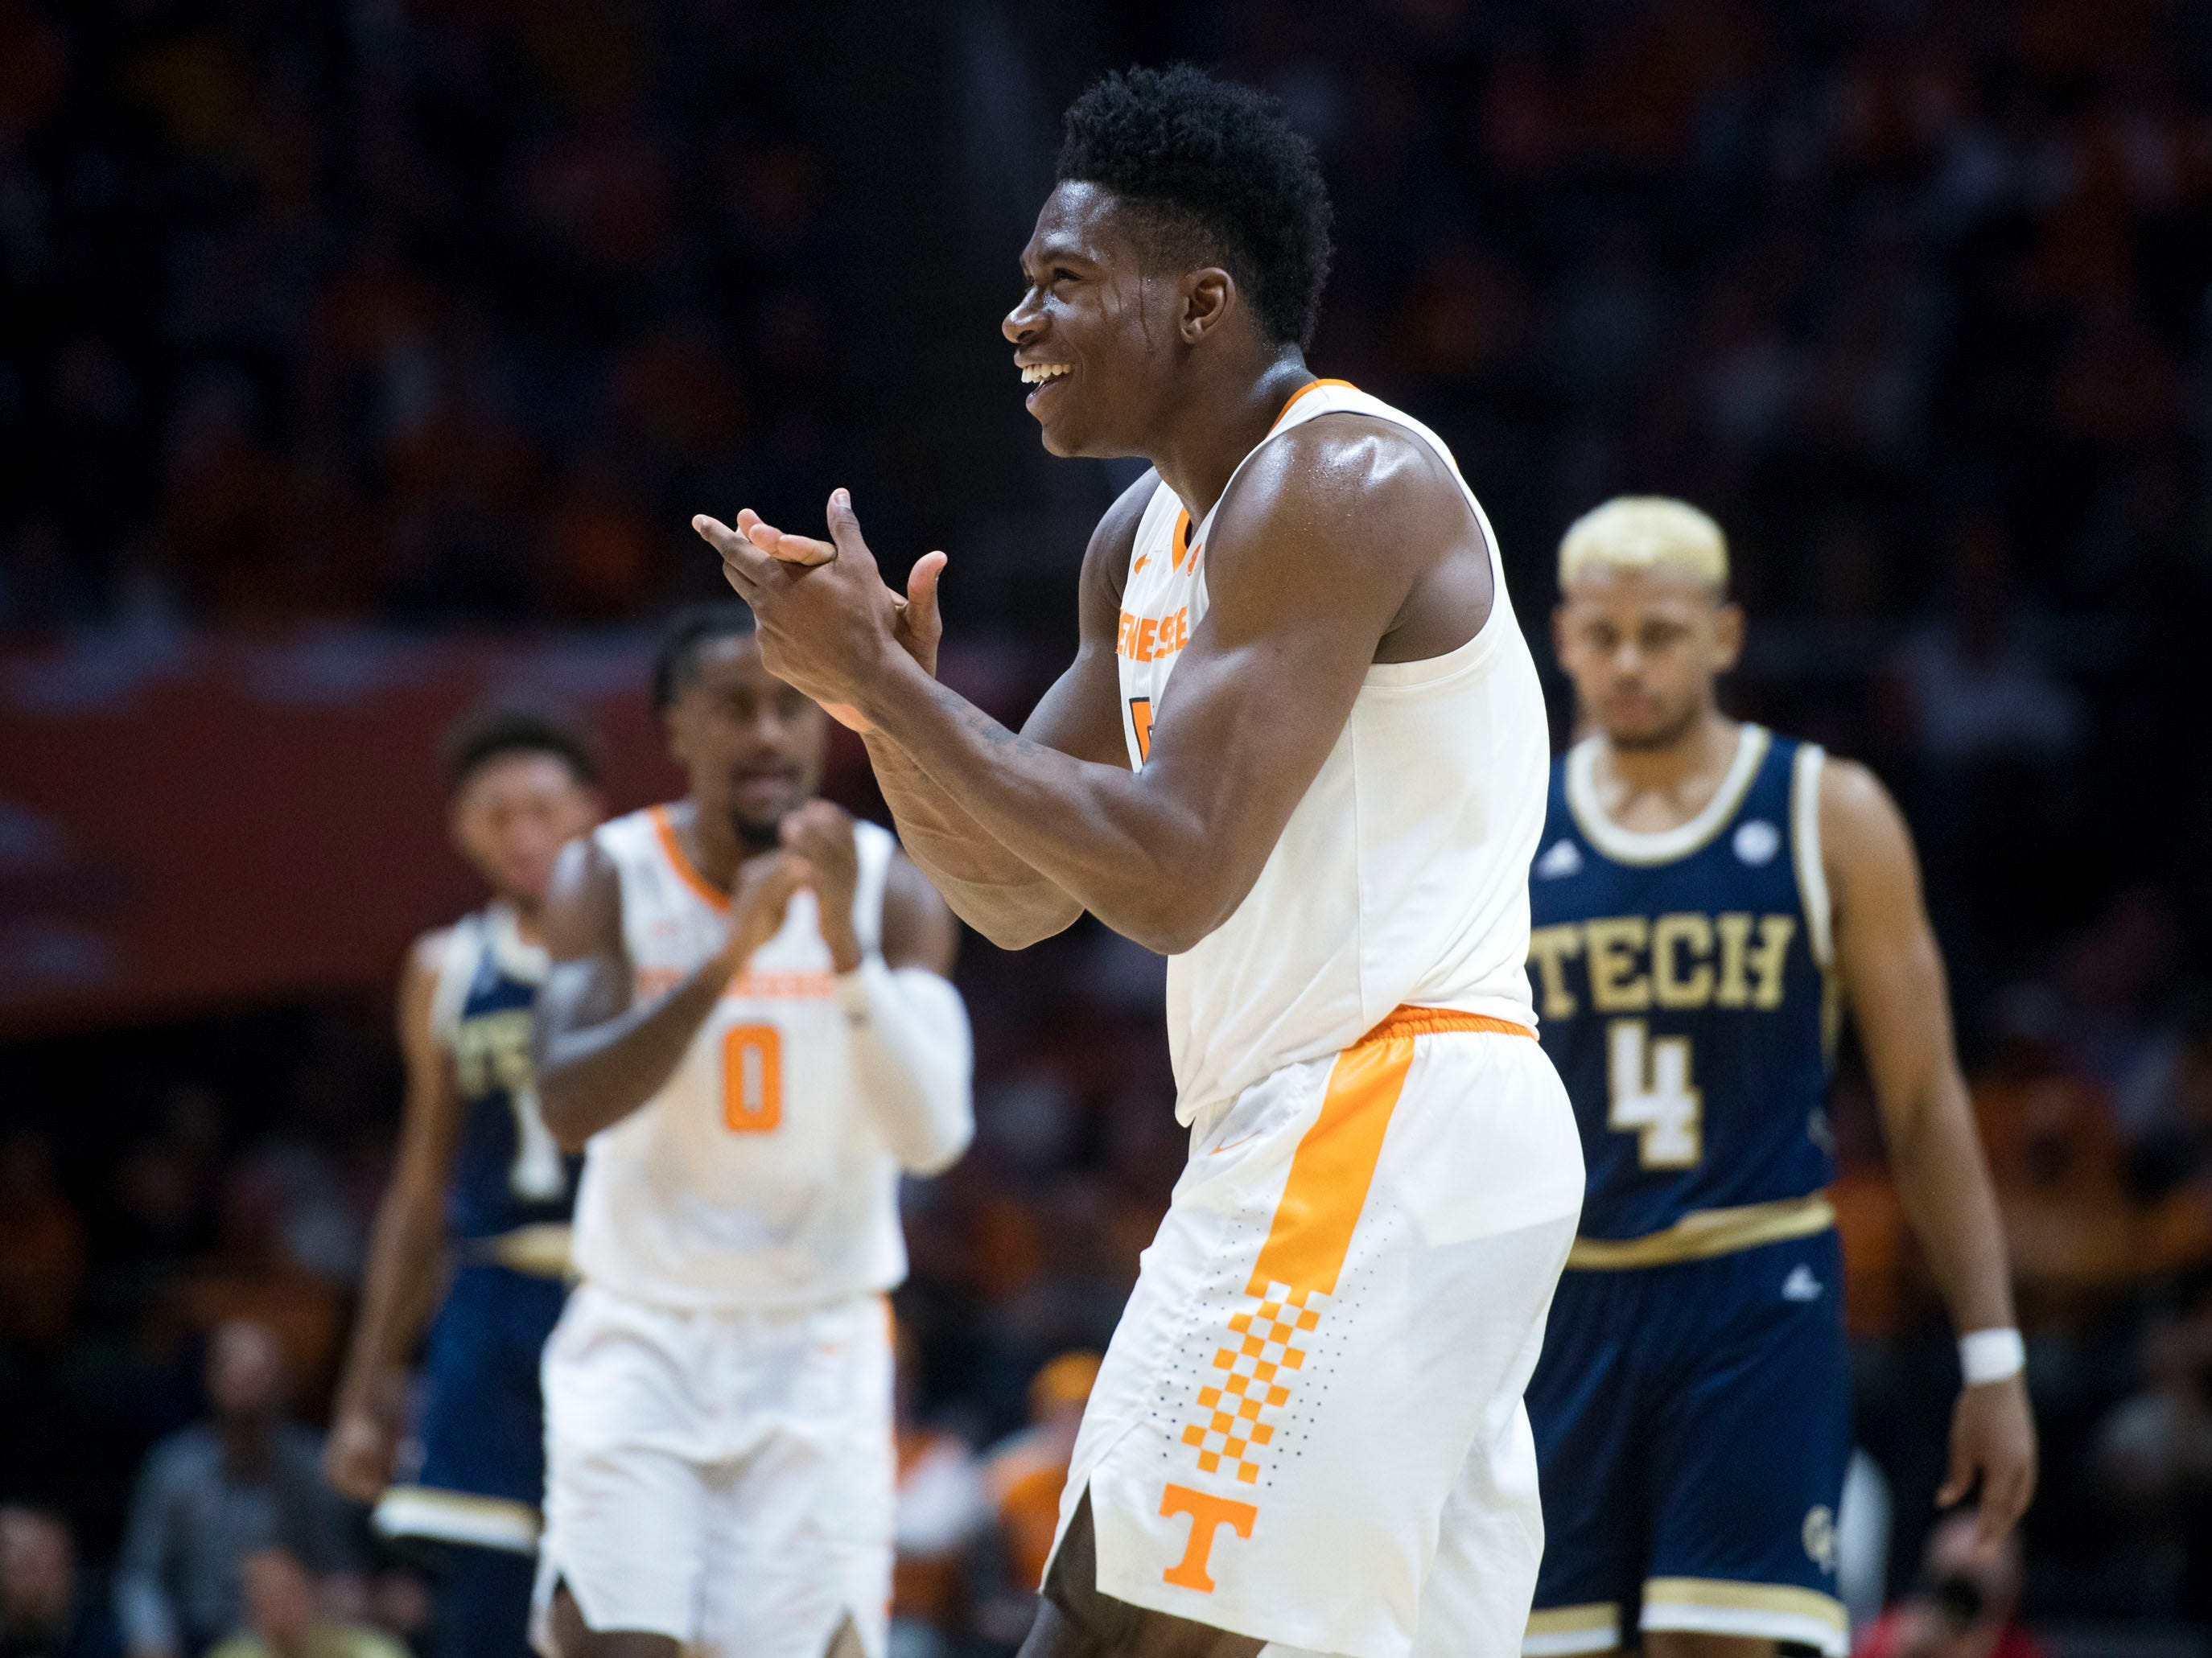 Tennessee's Admiral Schofield (5) celebrates during the game against Georgia Tech on Tuesday, November 13, 2018.